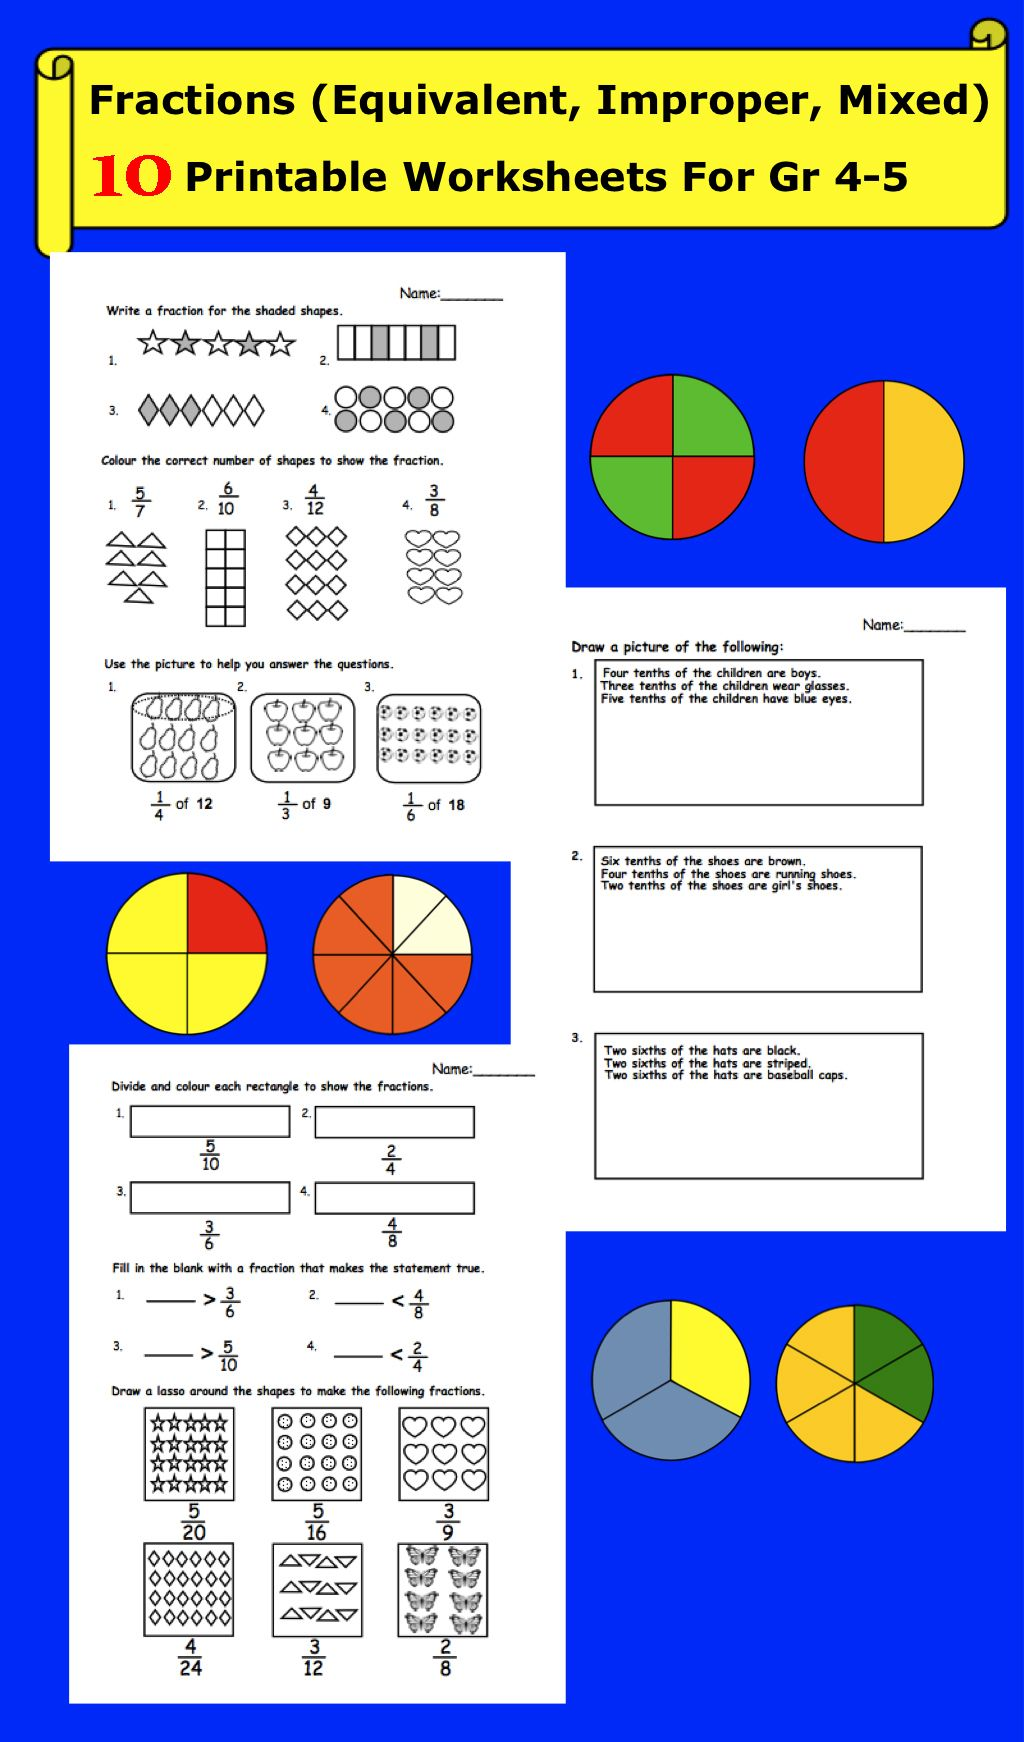 Fractions Equivalent Improper Mixed Printable Worksheets For Gr 4 5